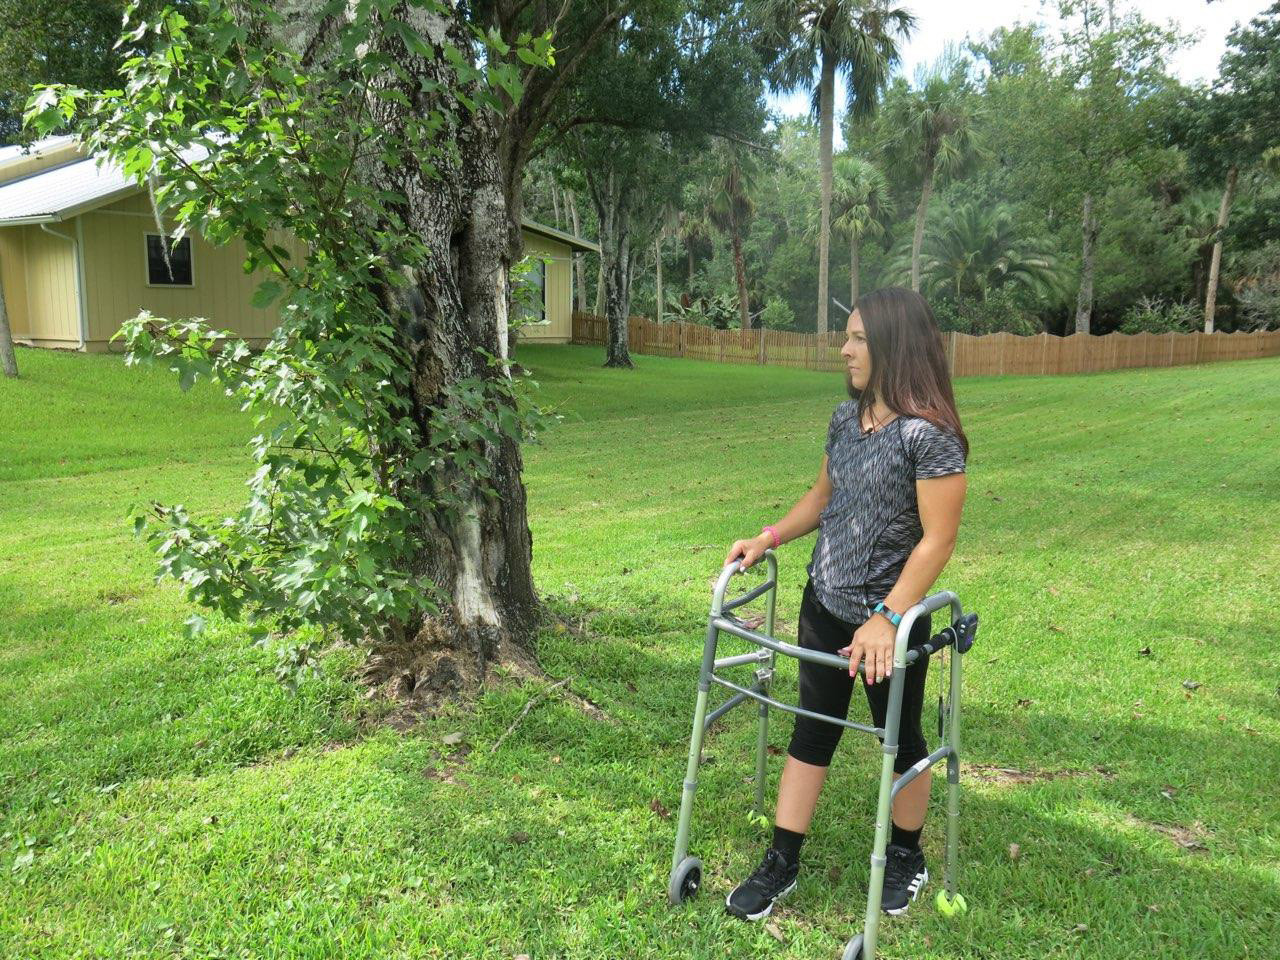 Paralyzed people are beginning to walk with a new kind of therapy